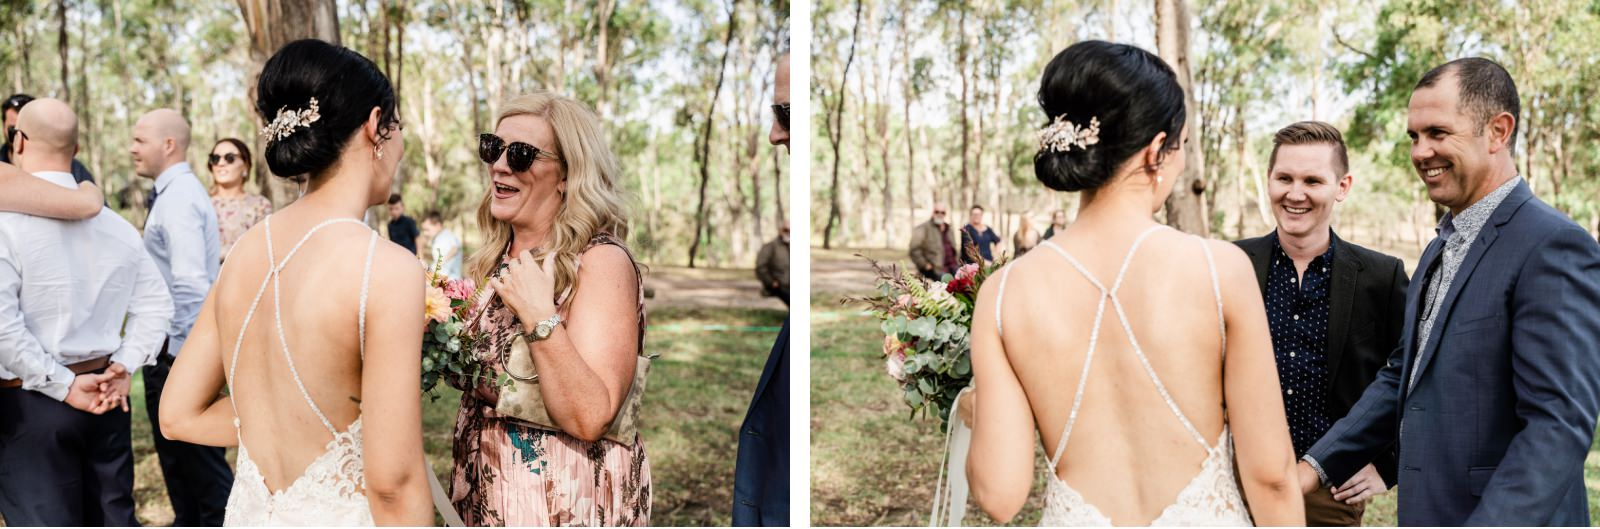 wandin-valley-estate-winery-lovedale-wedding-hunter-valley-wedding-photographer-35